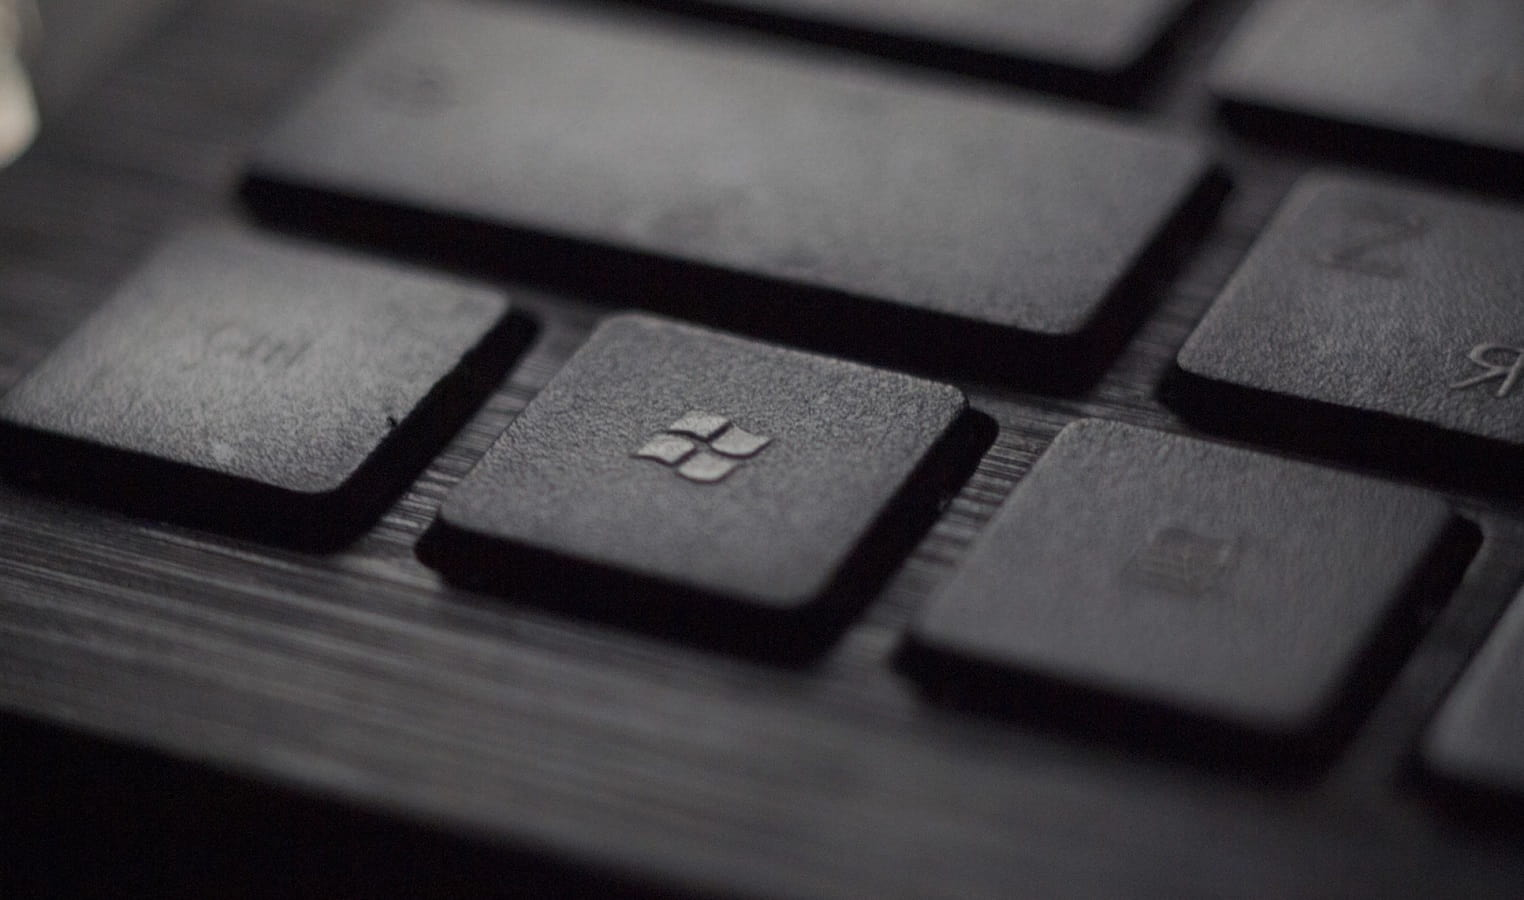 microsoft logo found on black keyboard